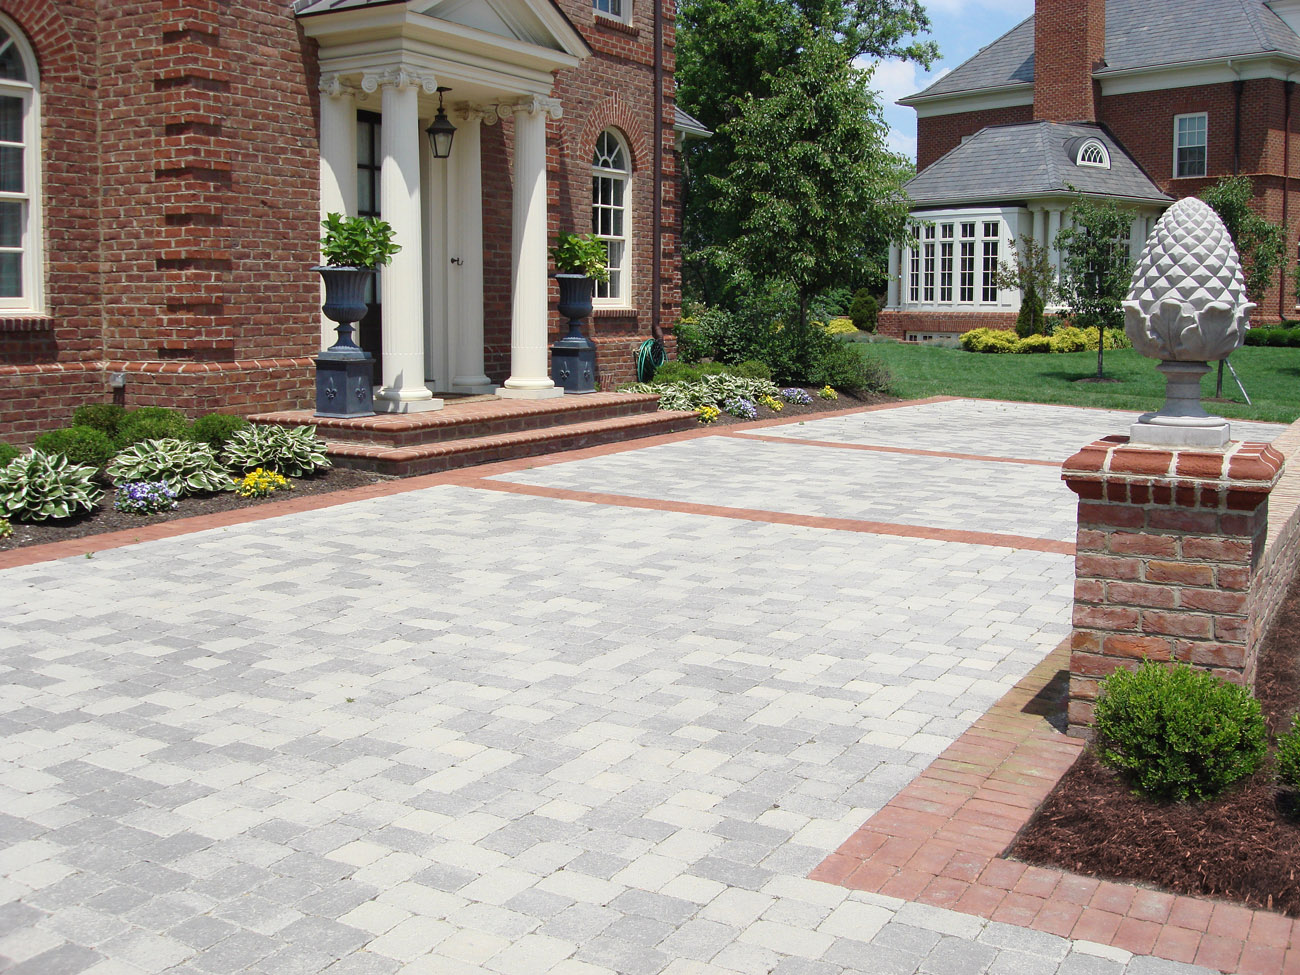 ... front yard paver driveway with landscape by landscape designer ... - Landscaping Landscape Architect Landscape